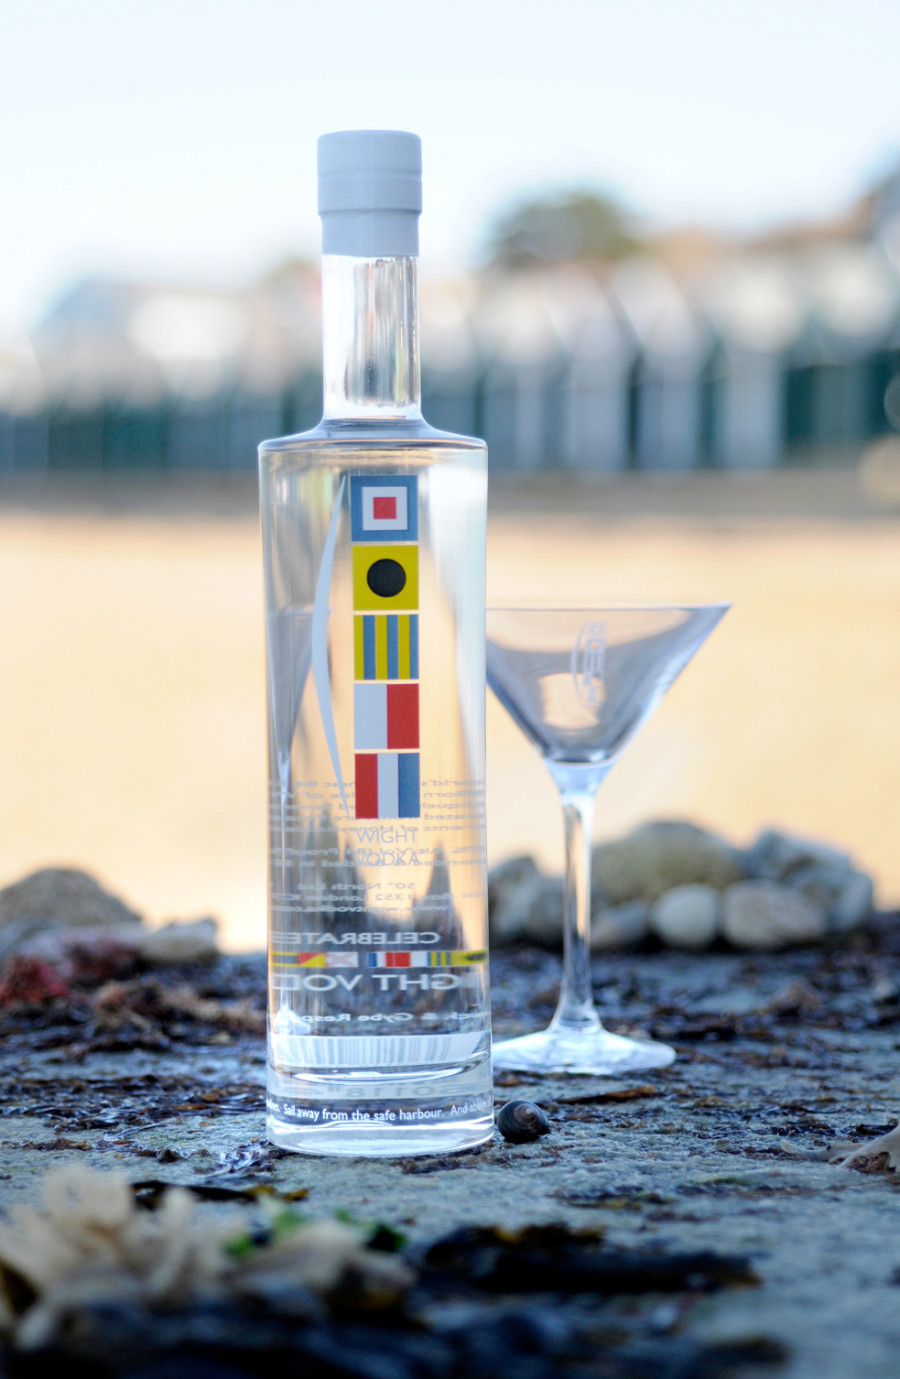 IYAC in Newport Wins Wight Vodka's 2011 Favourite Yachting Bar Contest